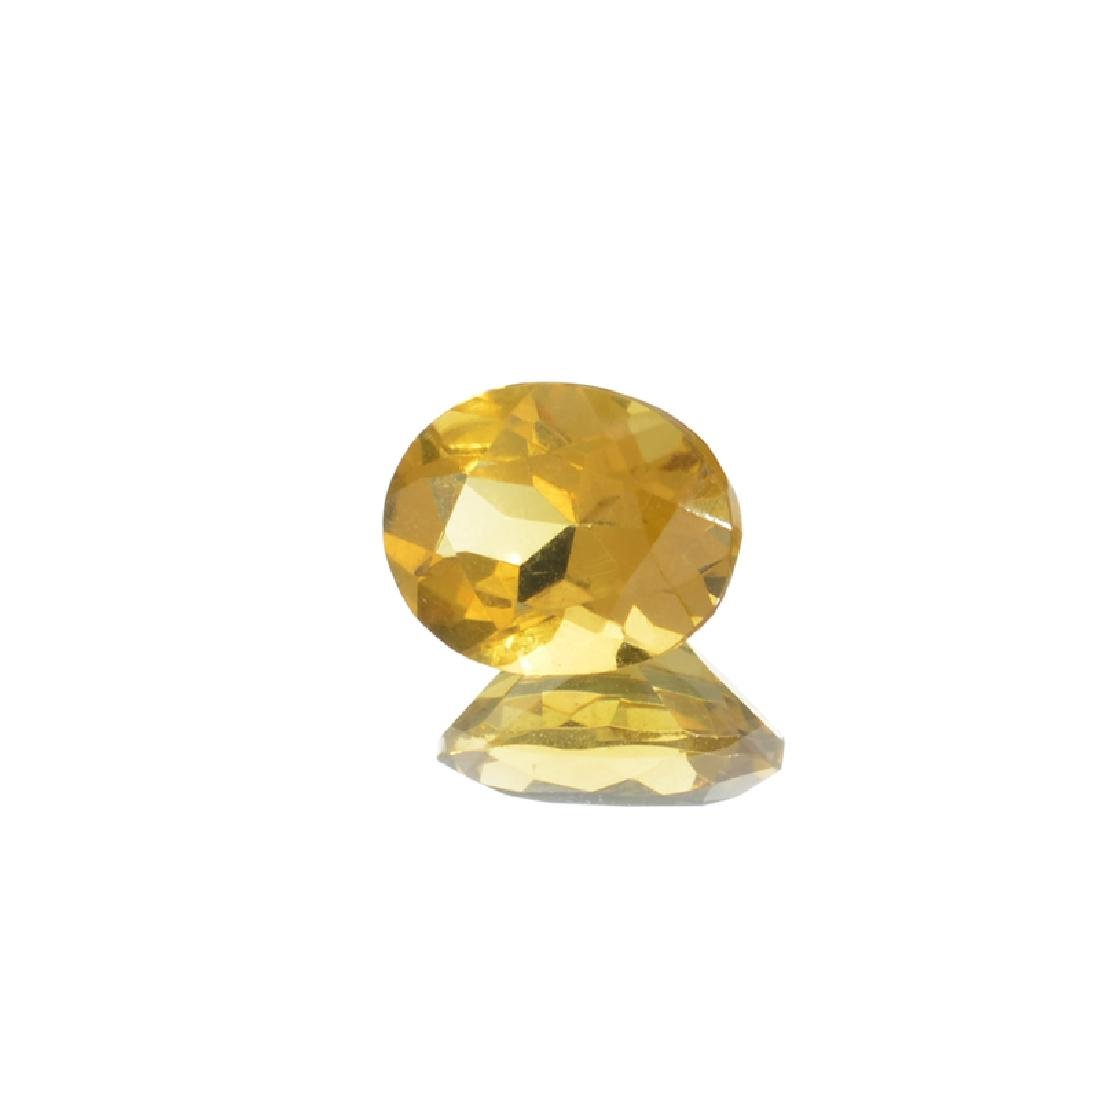 APP: 0.2k 3.34CT Oval Cut Citrine Gemstone